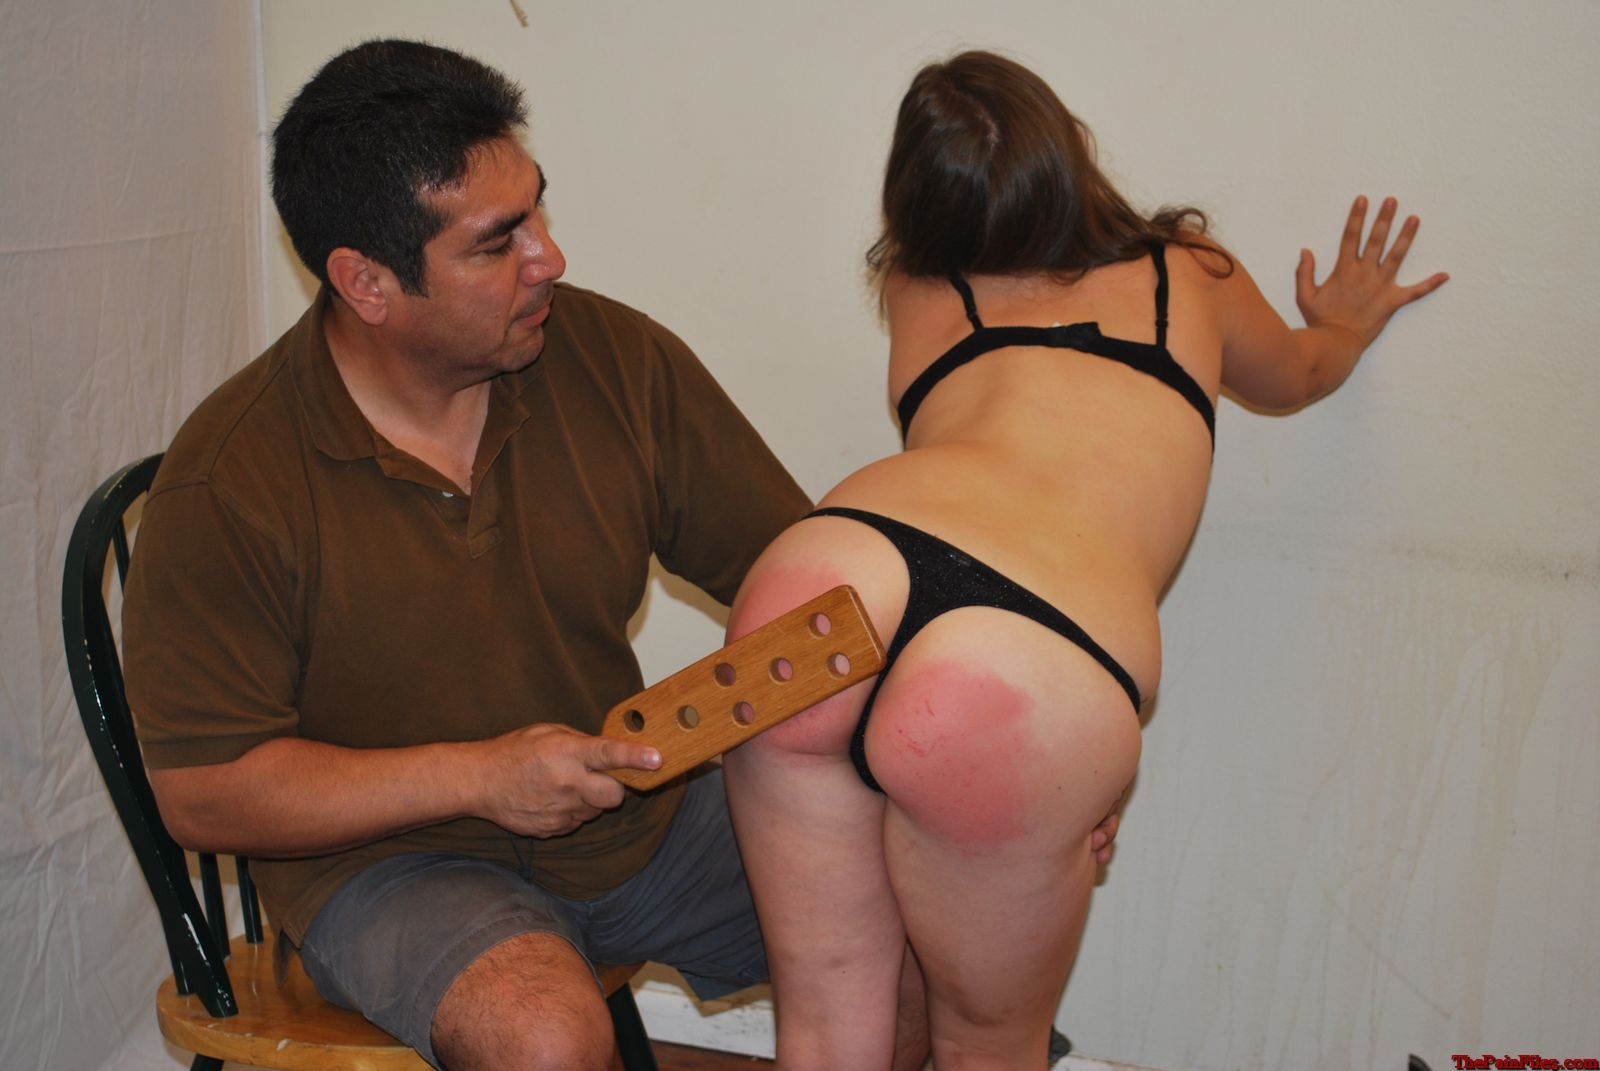 best of Spanking canada adult Bdsm